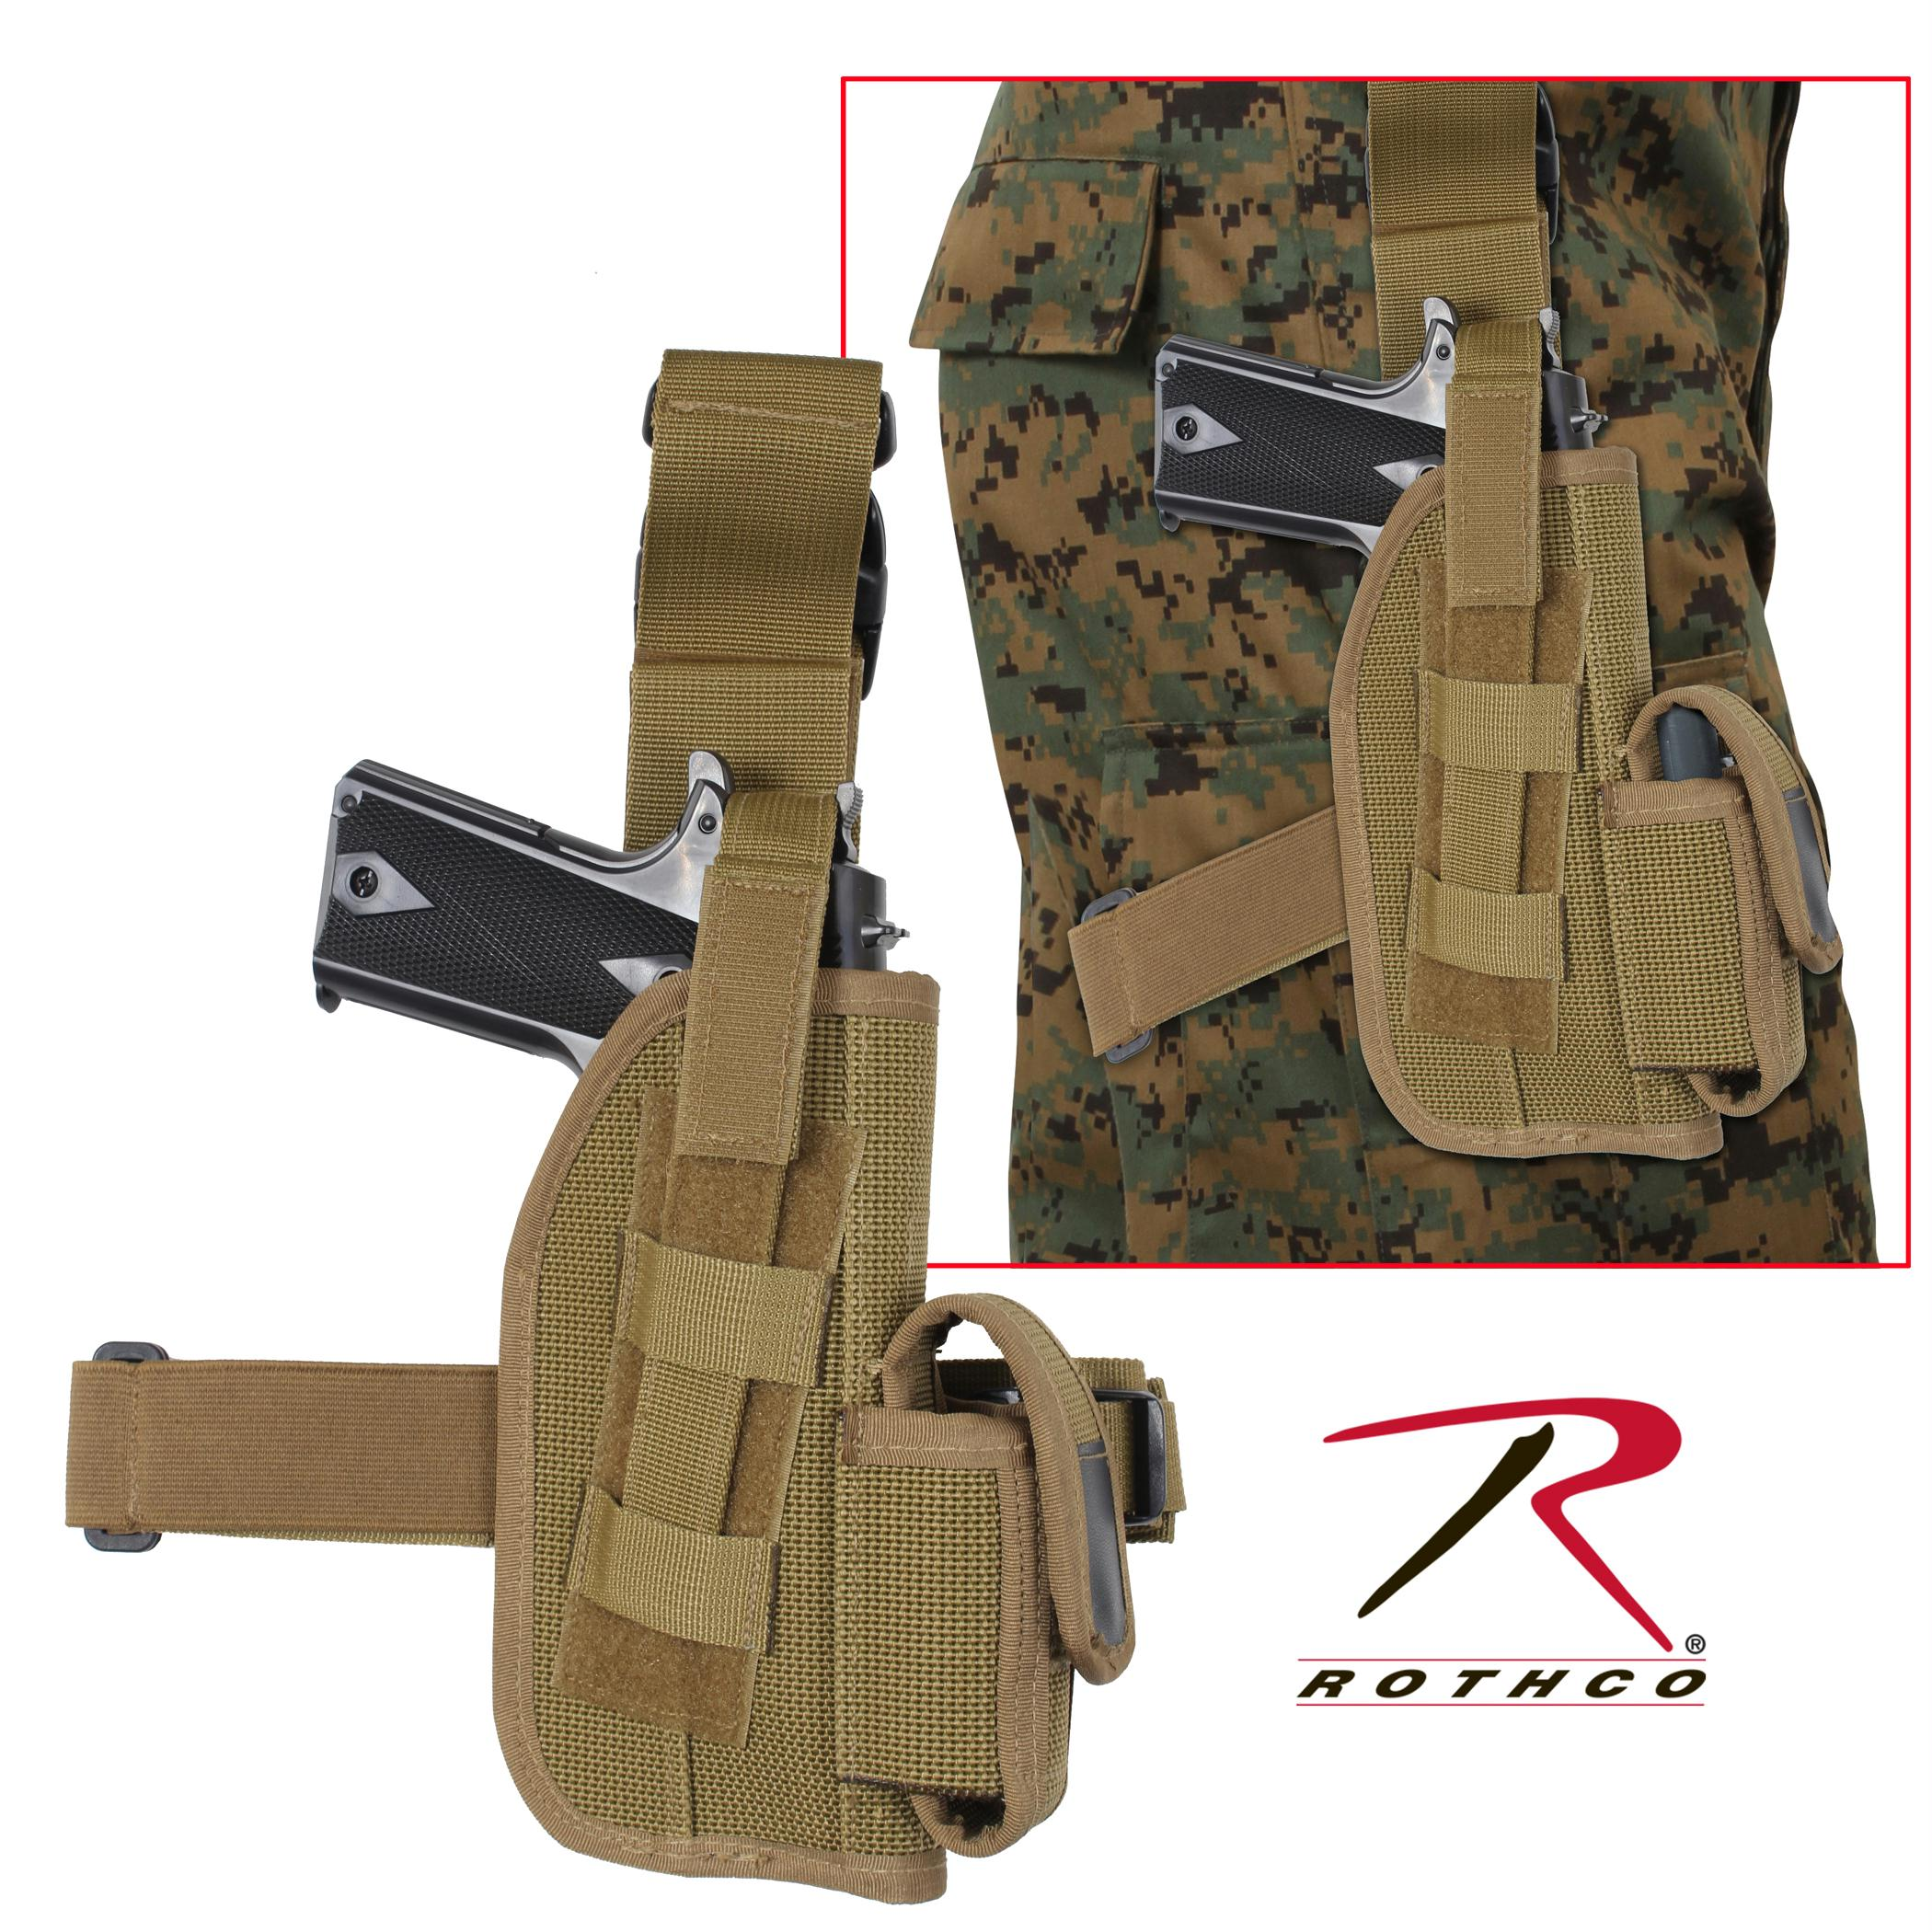 Rothco Tactical Leg Holster - Coyote Brown / 5 Inches